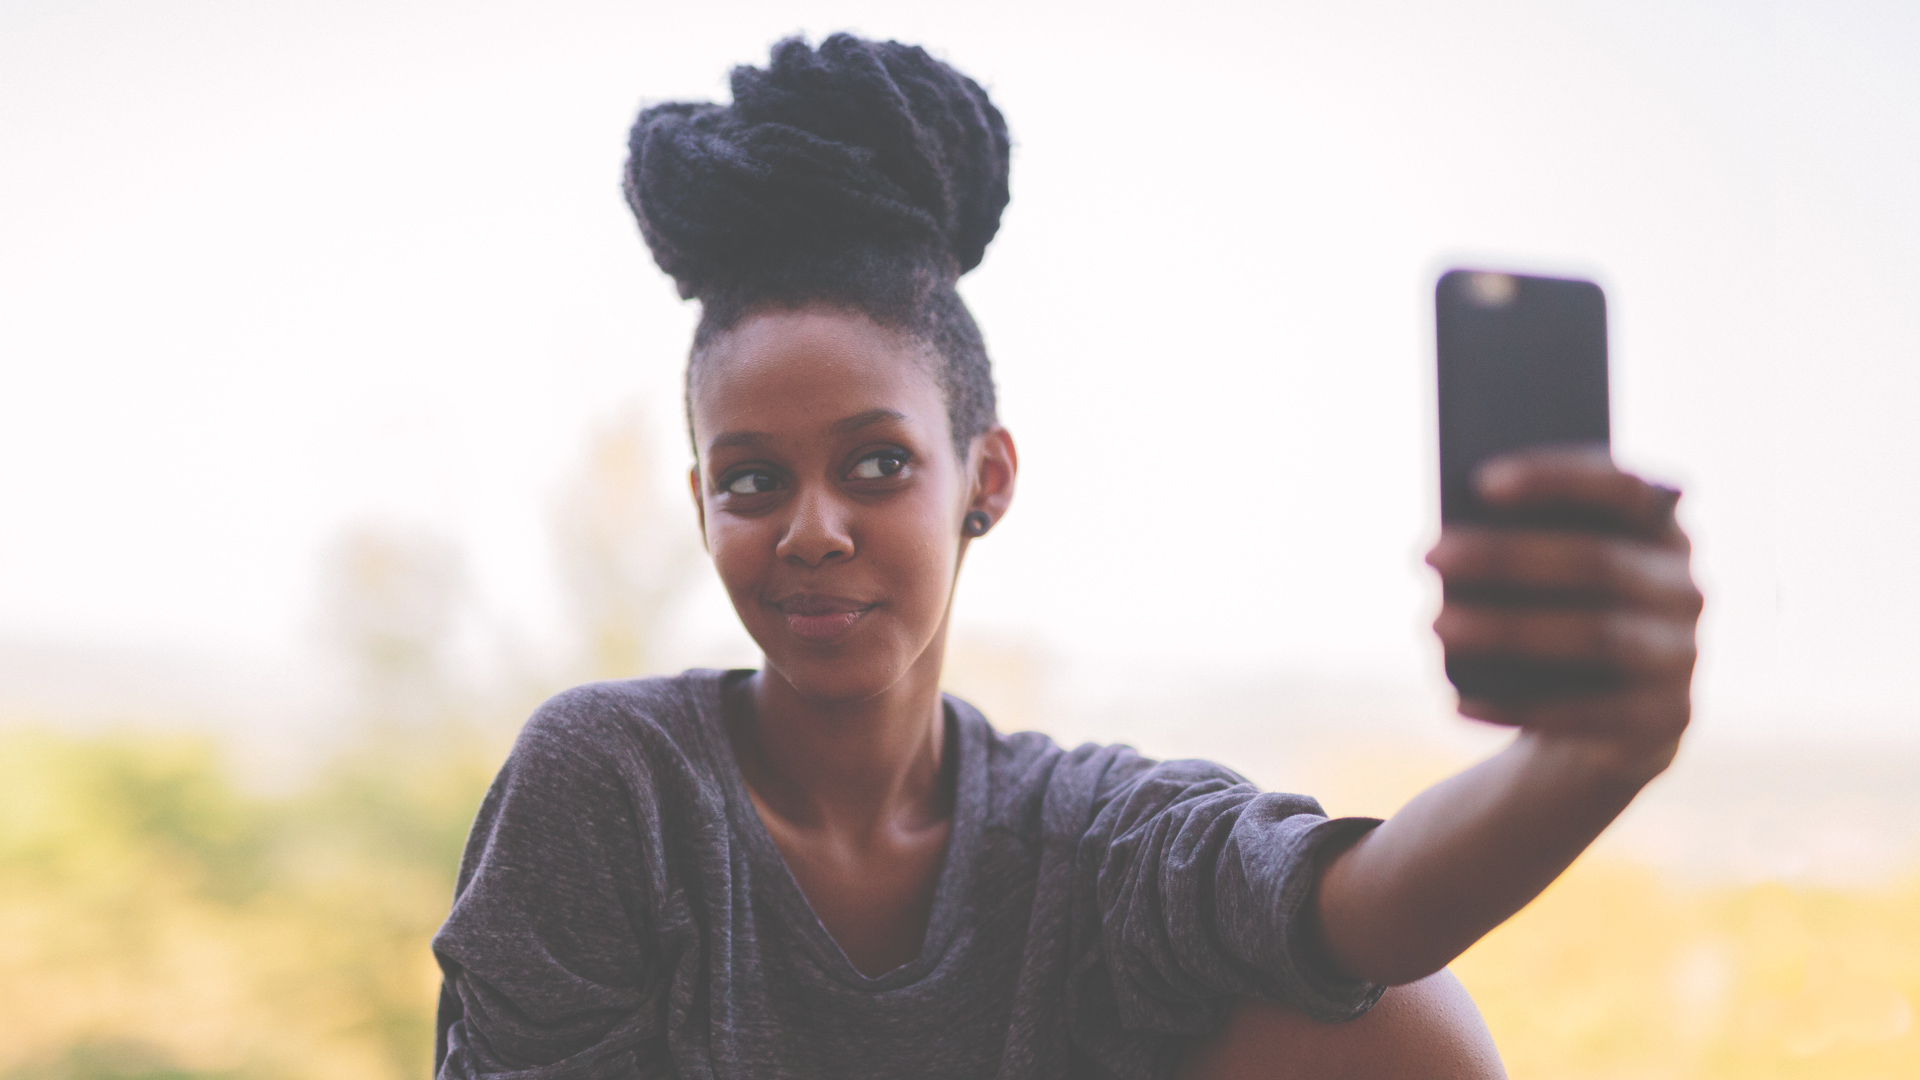 Woman taking a selfie on her phone